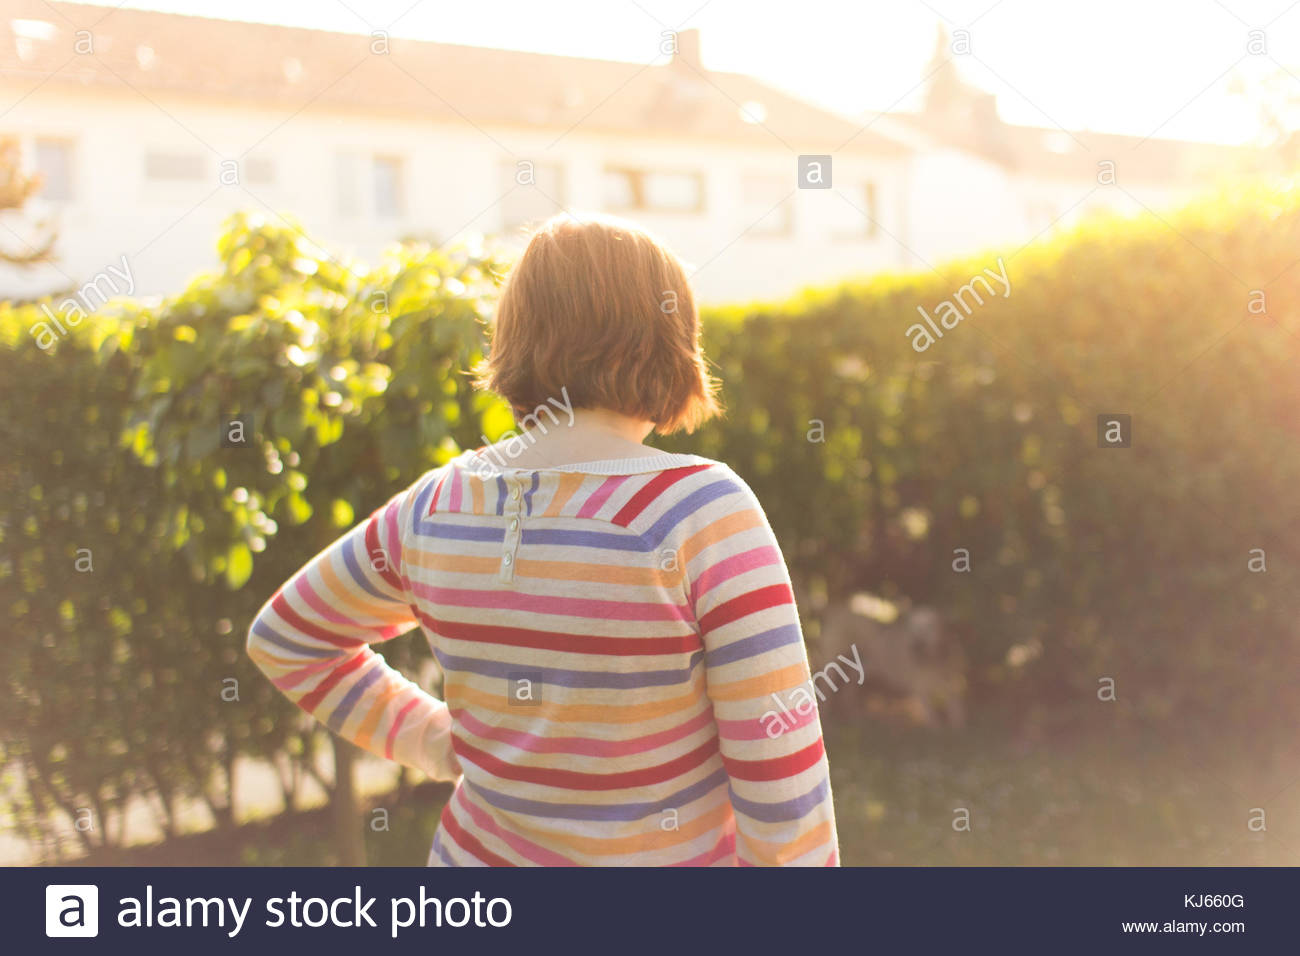 woman in suburb by hedge - Stock Image